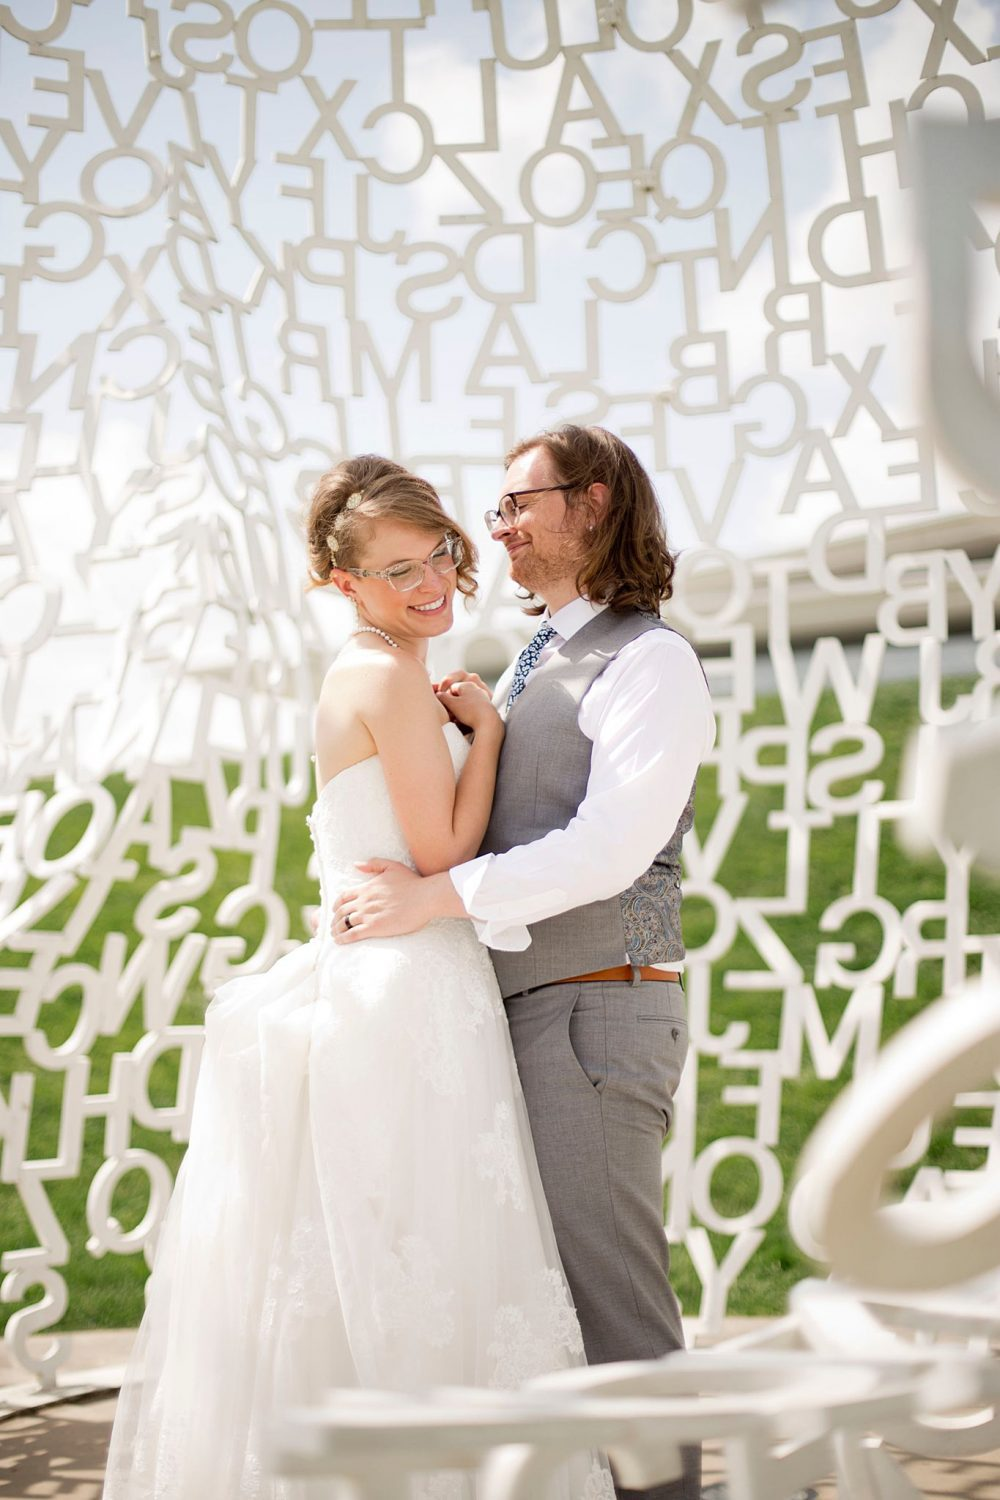 Portrait of bride and groom in a park